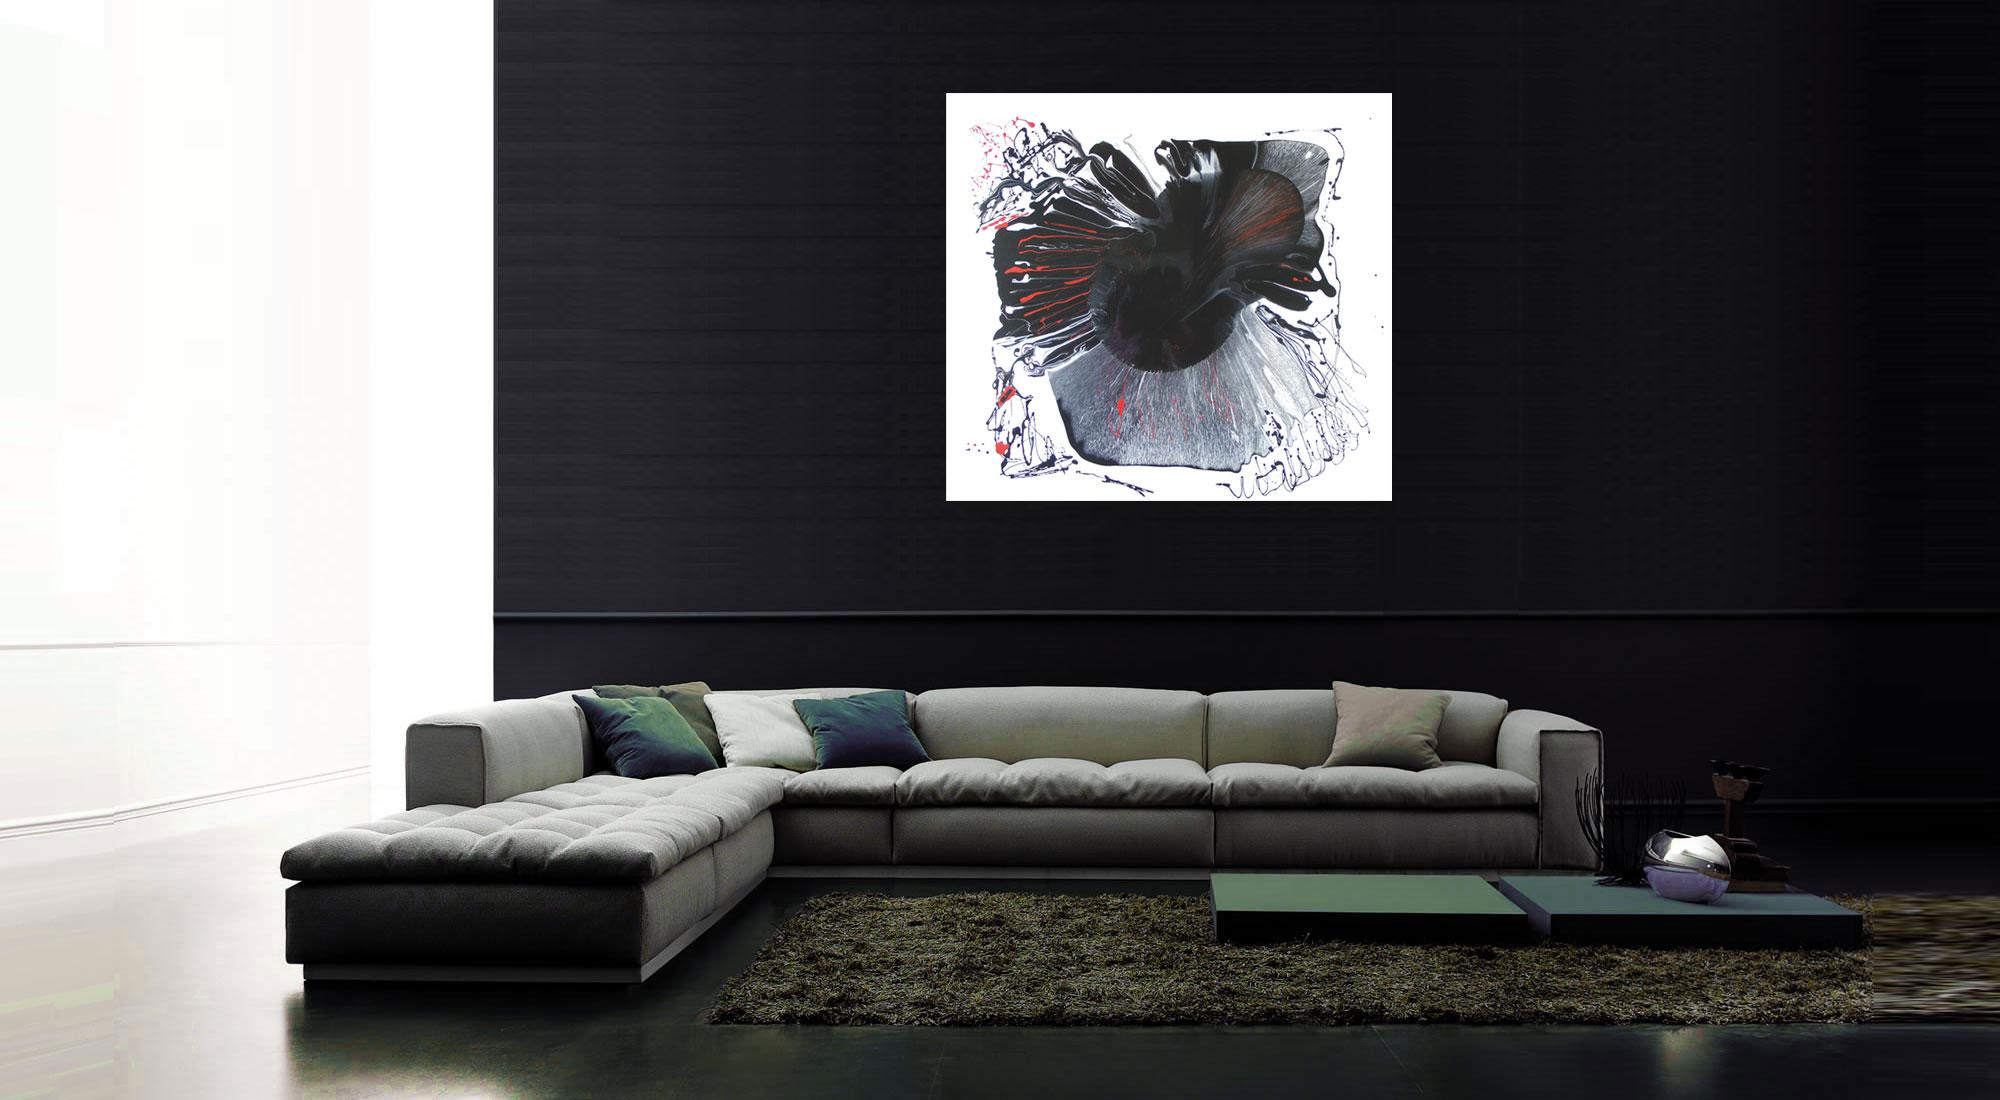 Black white and red abstract painting original modern abstract paintiing for sale